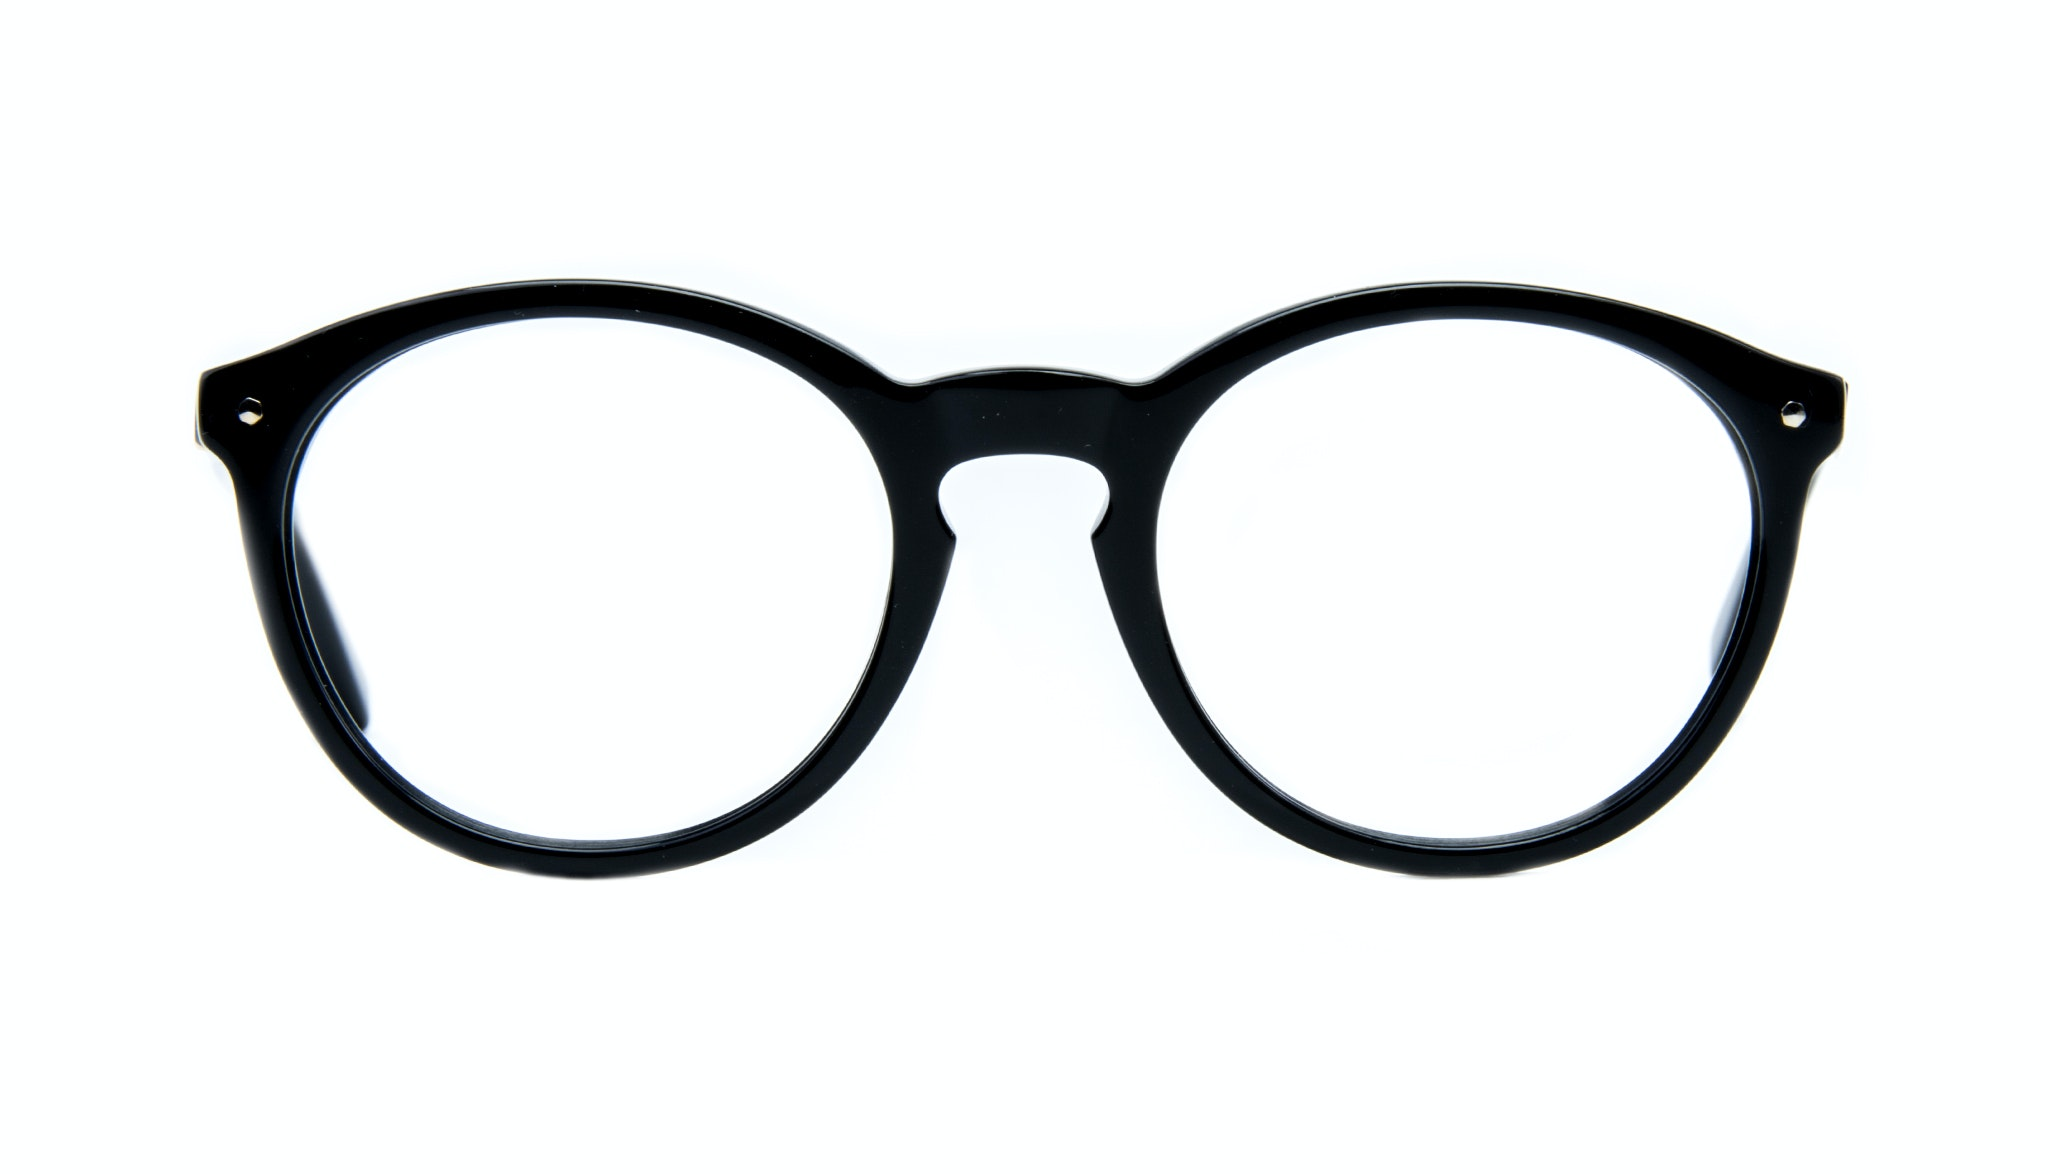 Affordable Fashion Glasses Round Eyeglasses Women Glow Onyx